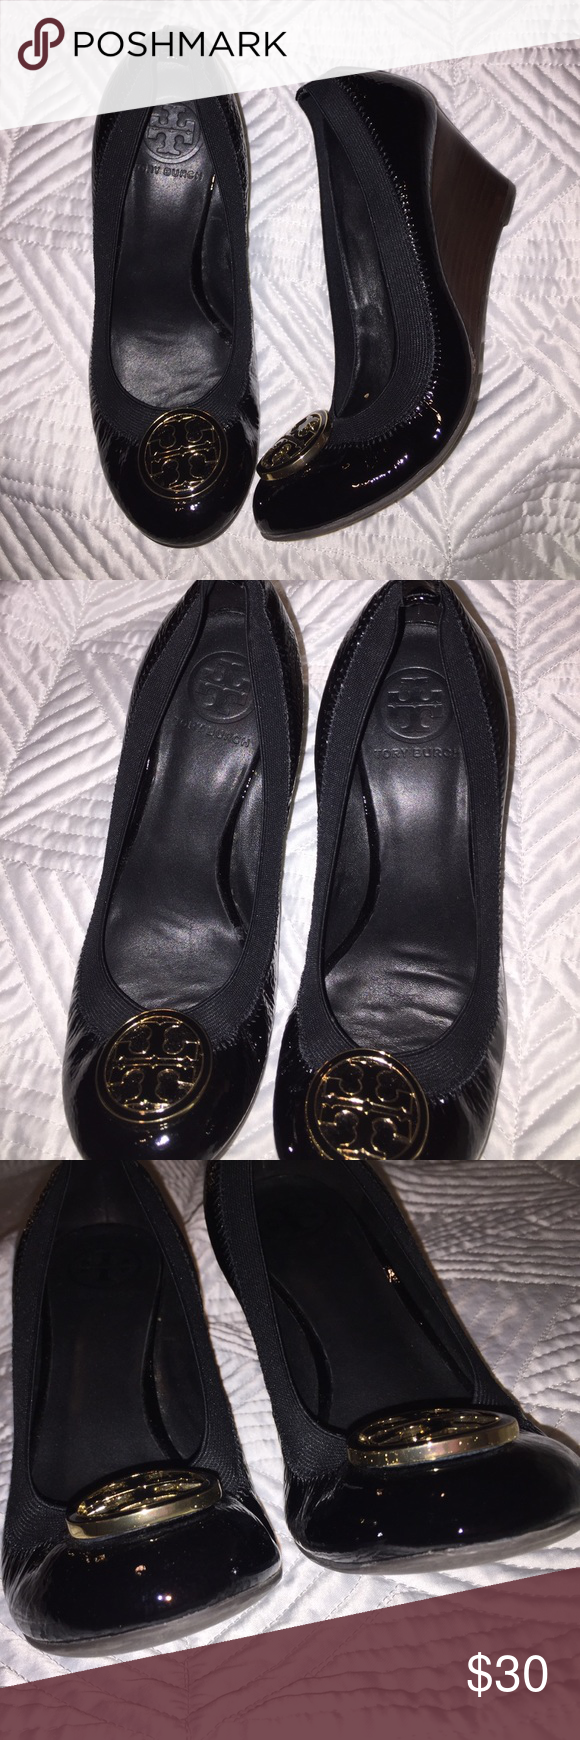 d77a9ed8a2ca Tory burch wedges 2.5 inch heel. Glossy black with black and gold 3D logo.  In good condition size 7.5 US I will ship in 1-2 days. Thank you Tory Burch  Shoes ...